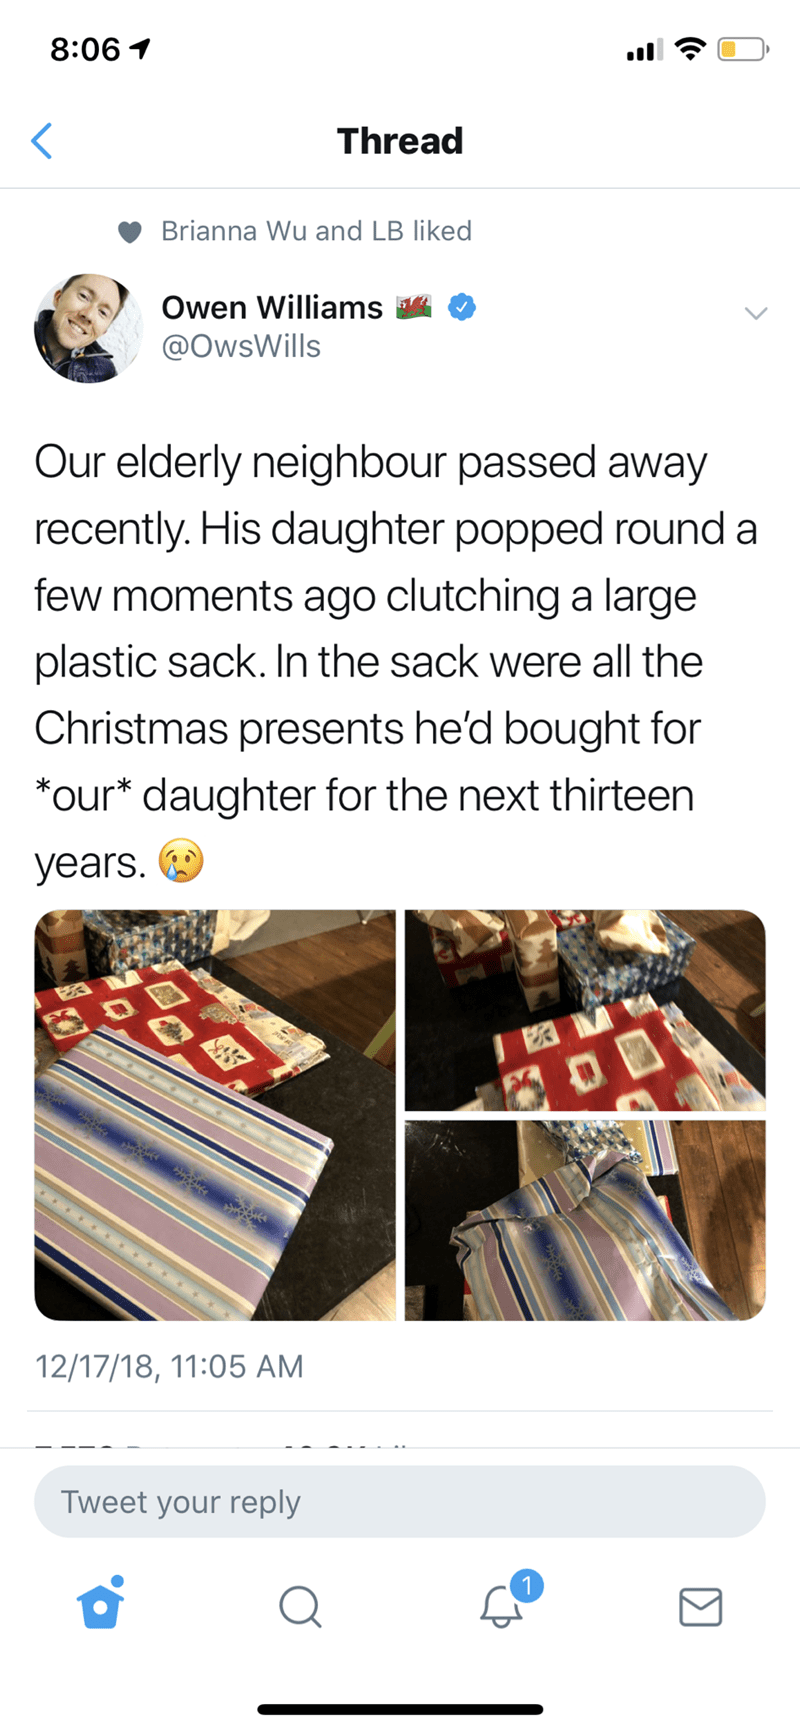 Text - 8:06 1 Thread Brianna Wu and LB liked Owen Williams A @OwsWills Our elderly neighbour passed away recently. His daughter popped round a few moments ago clutchinga large plastic sack. In the sack were all the Christmas presents he'd bought for *our* daughter for the next thirteen years. 12/17/18, 11:05 AM Tweet your reply (•